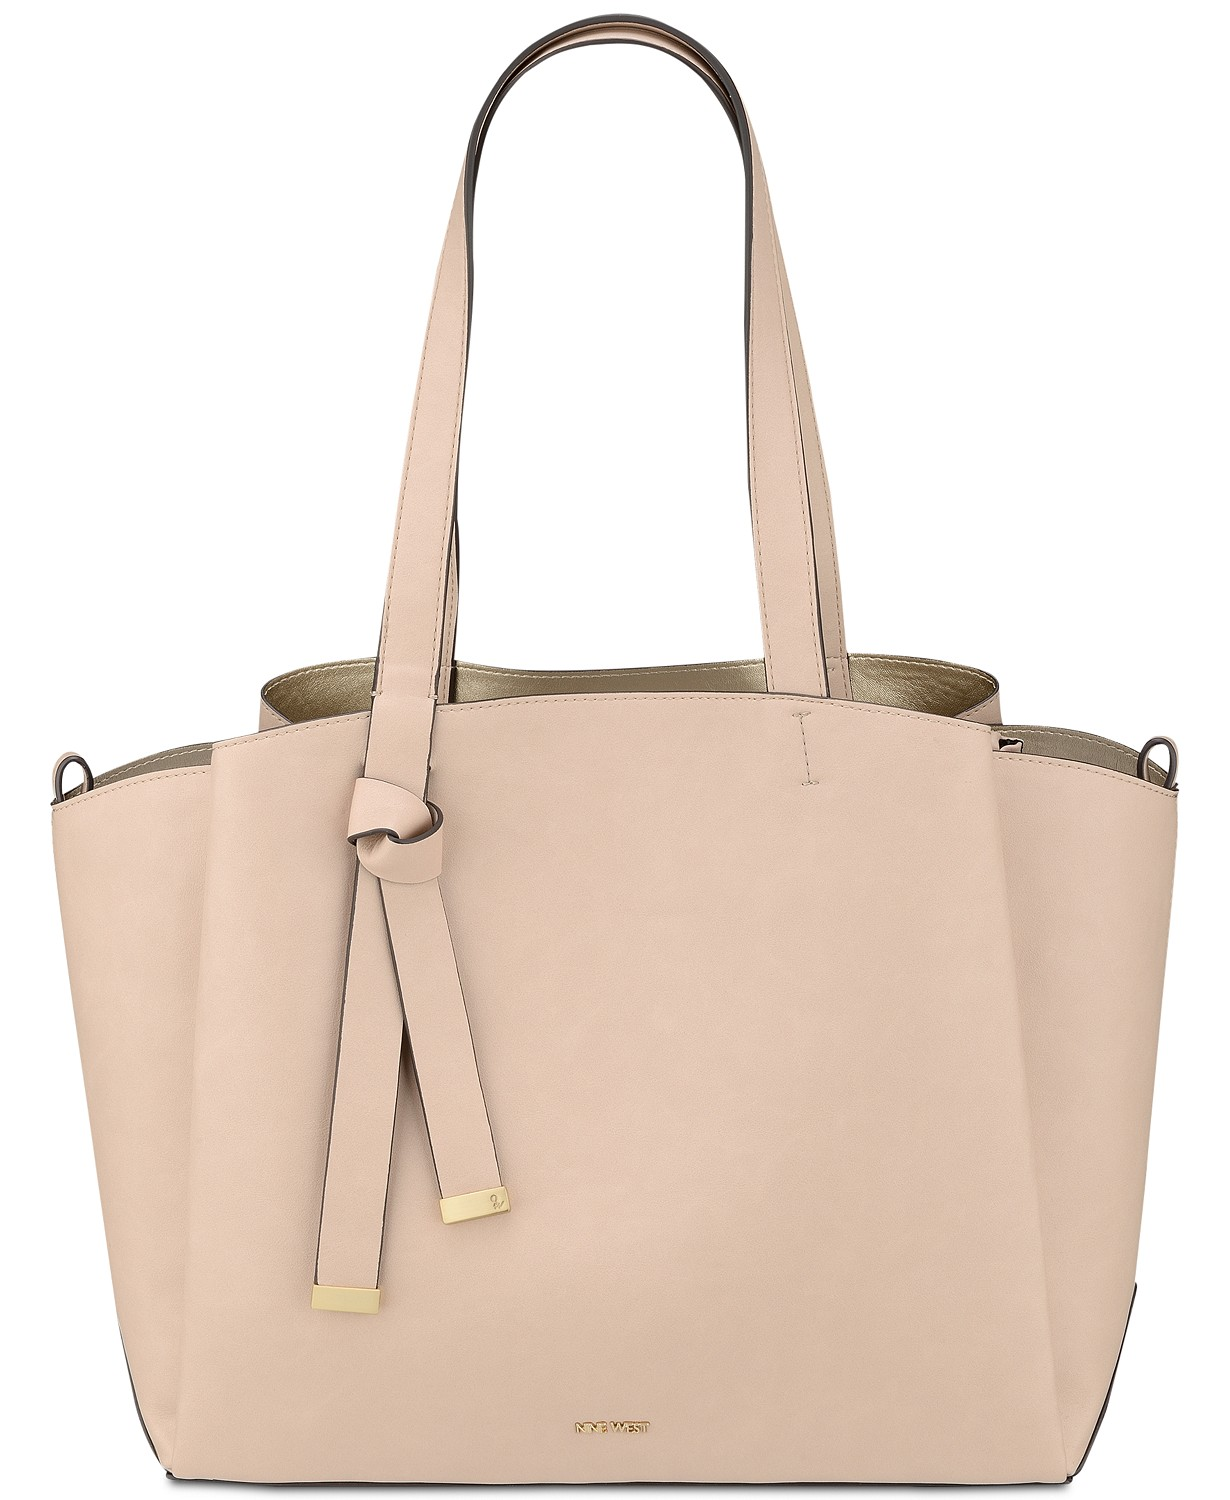 Nince West tote